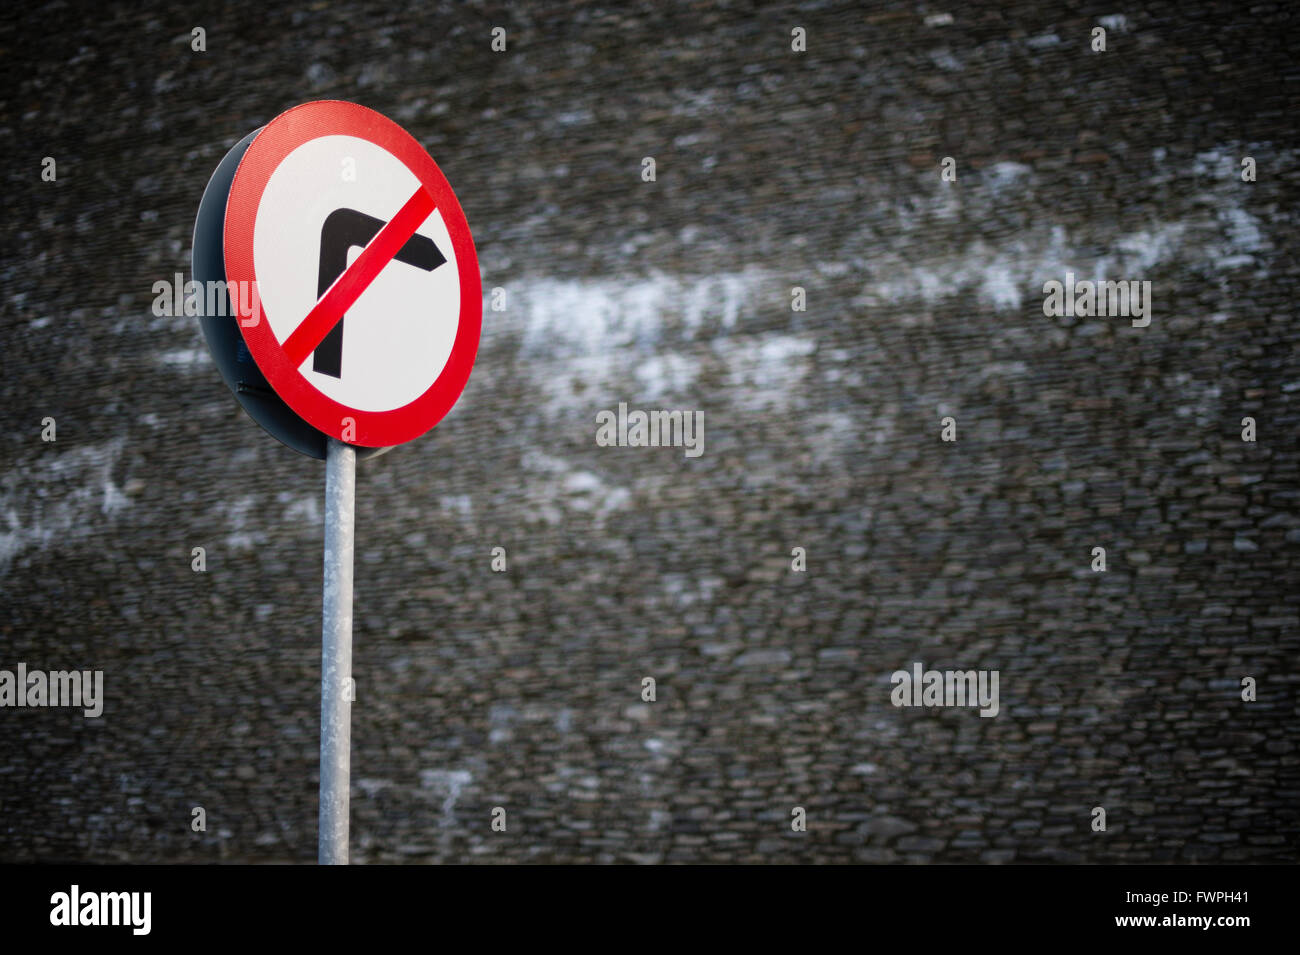 A no right turn road sign UK - Stock Image